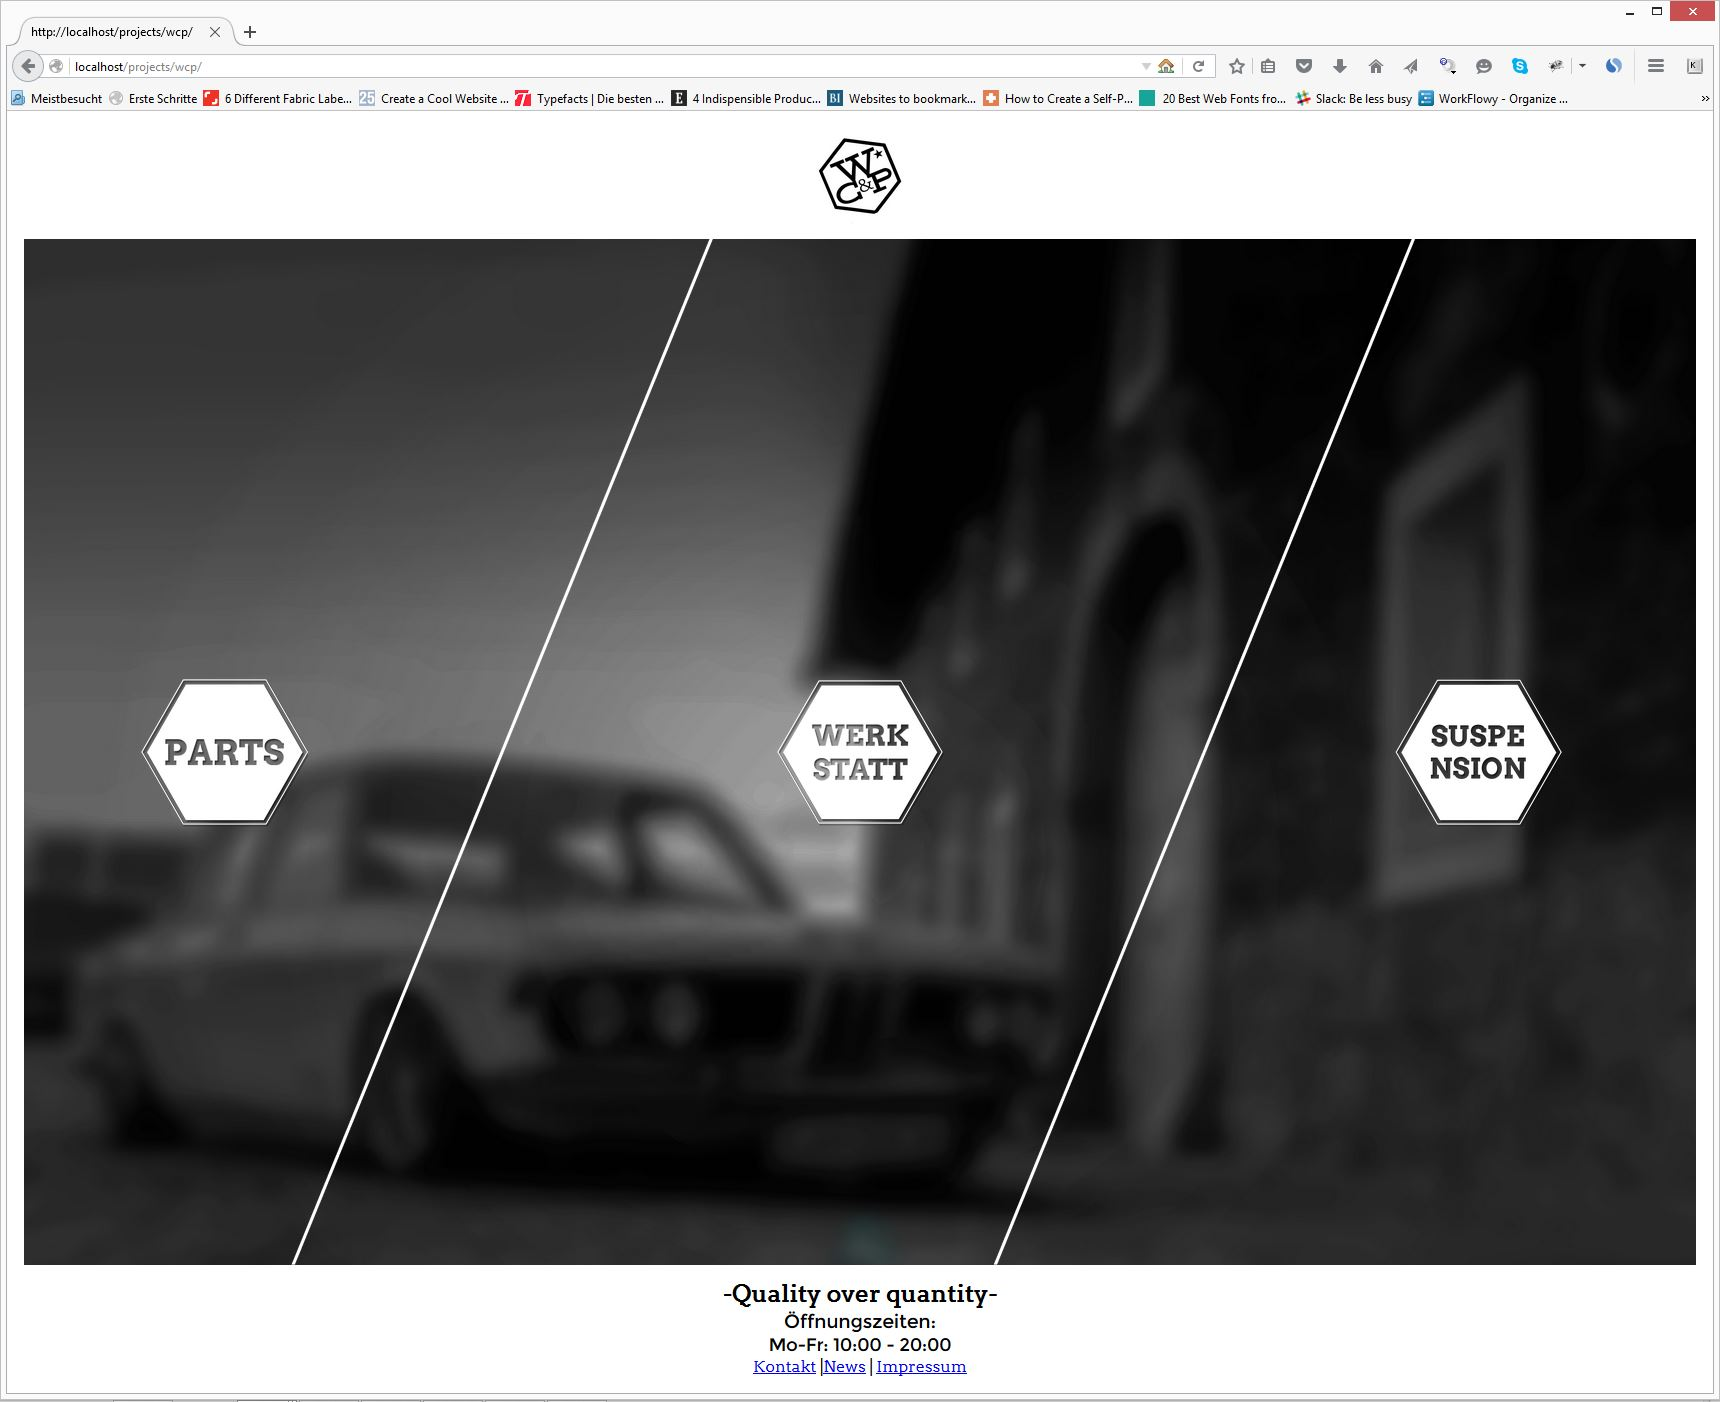 picture download Css works in firefox. Clip path